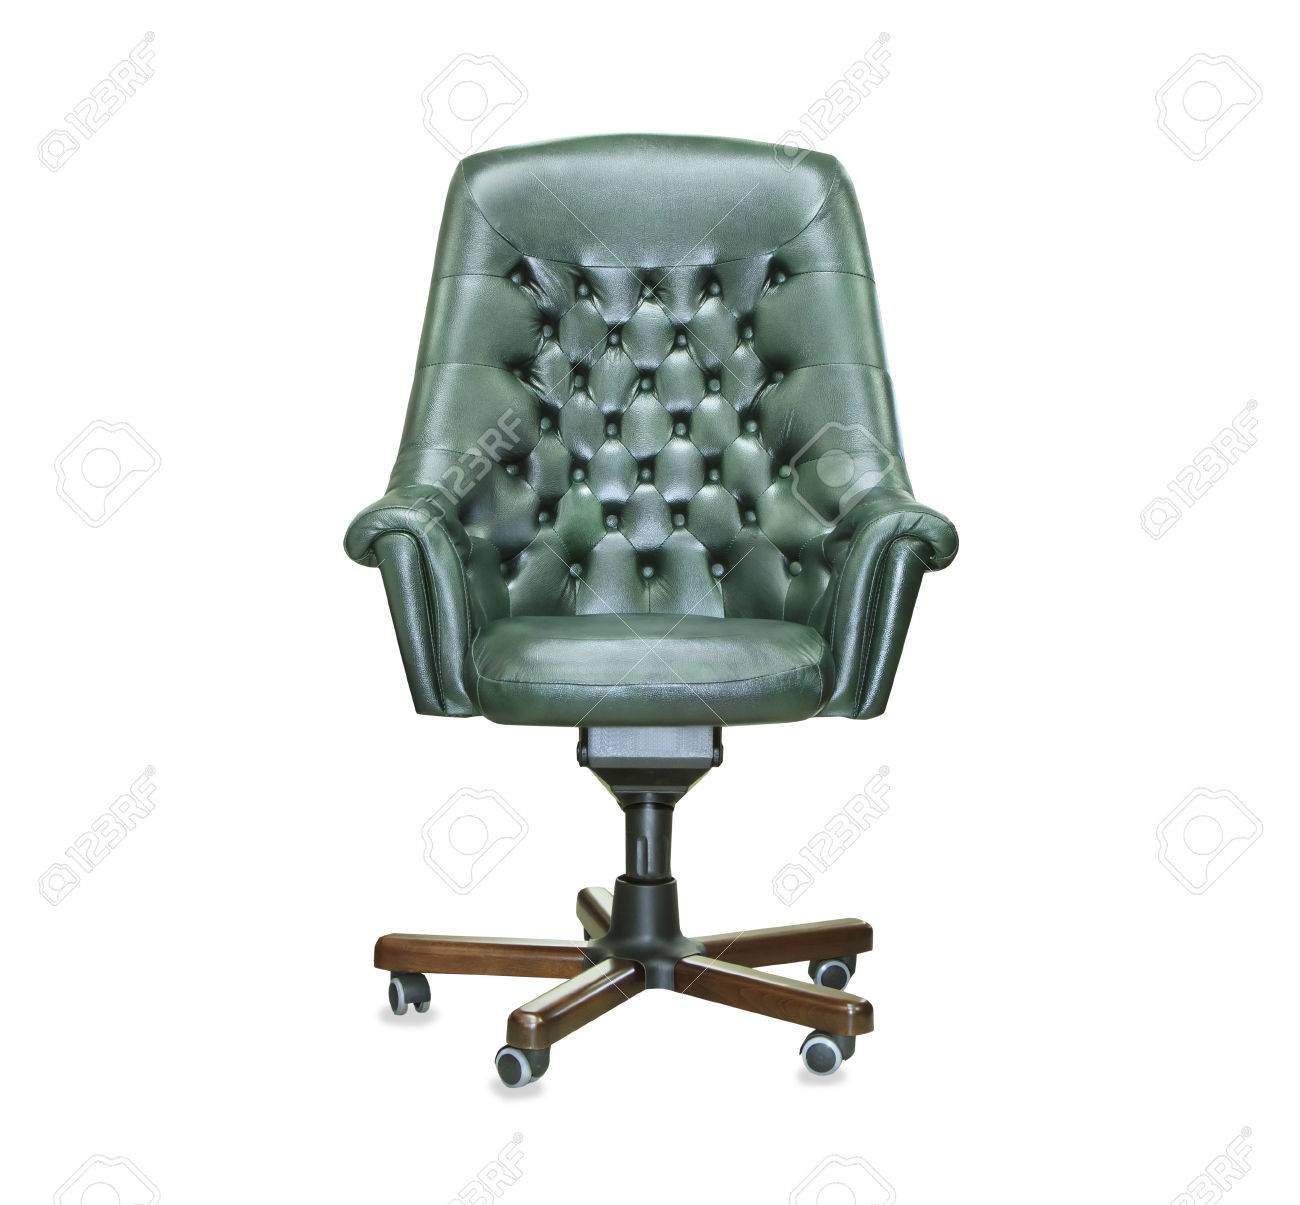 president office furniture. Stock Photo - The President Office Chair From Green Leather. Isolated Furniture